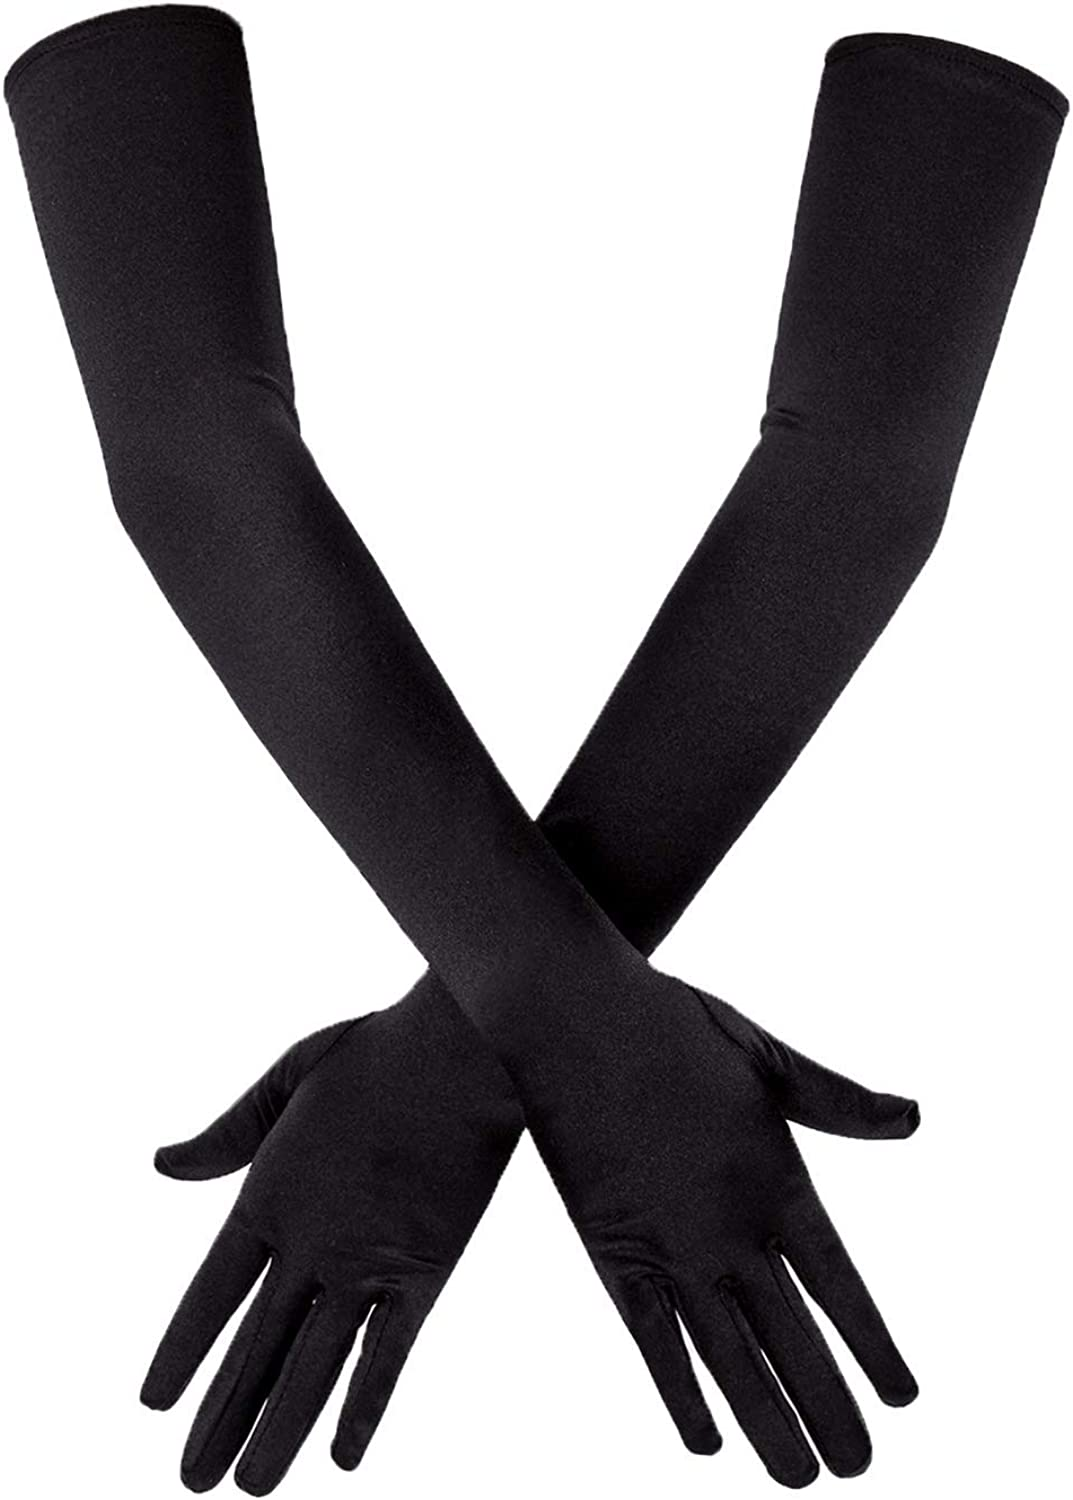 New Dreamgirl 5218 Black Stretch Satin Opera Length Gloves